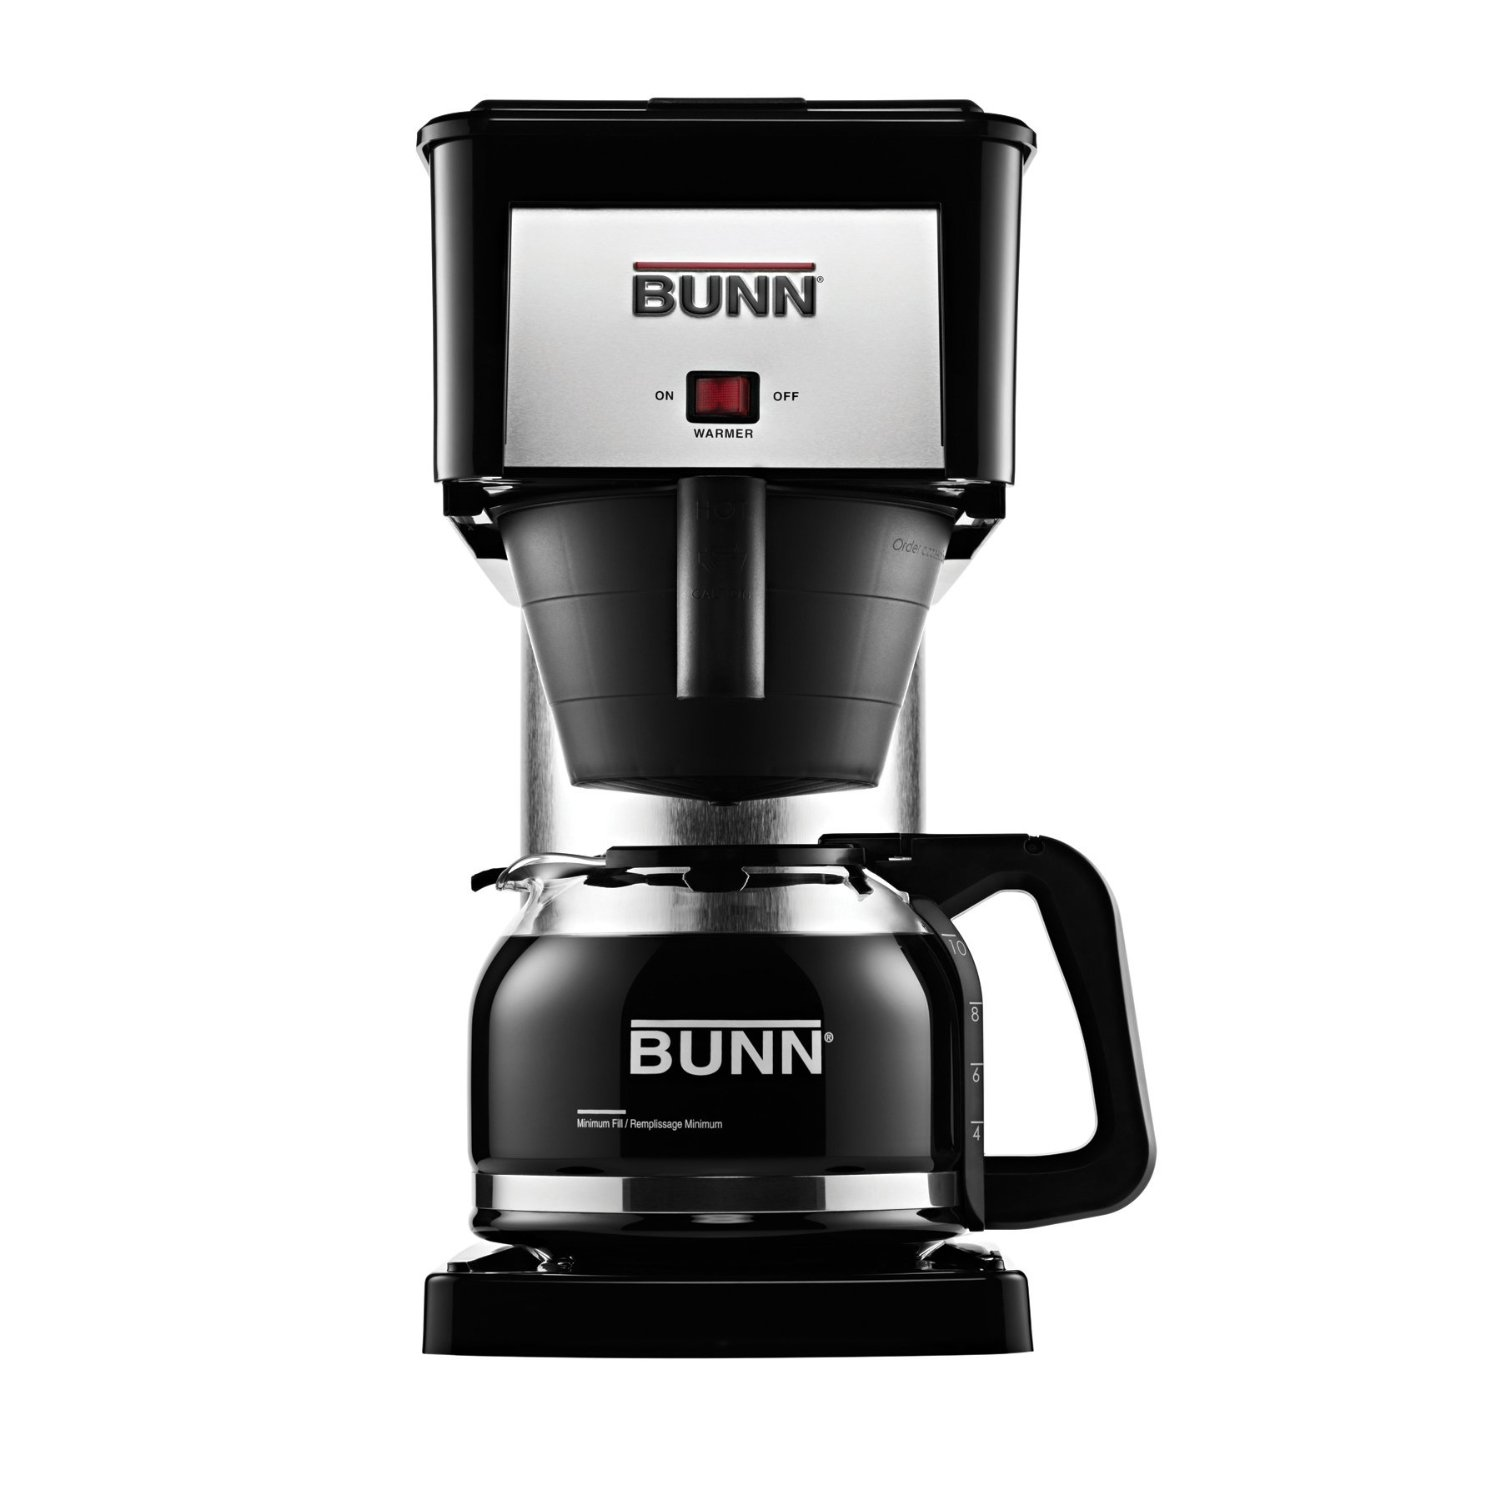 How Many Scoops Of Coffee For Bunn Coffee Maker : Bunn Coffee Maker Review: The Speedy BXB Velocity Brew